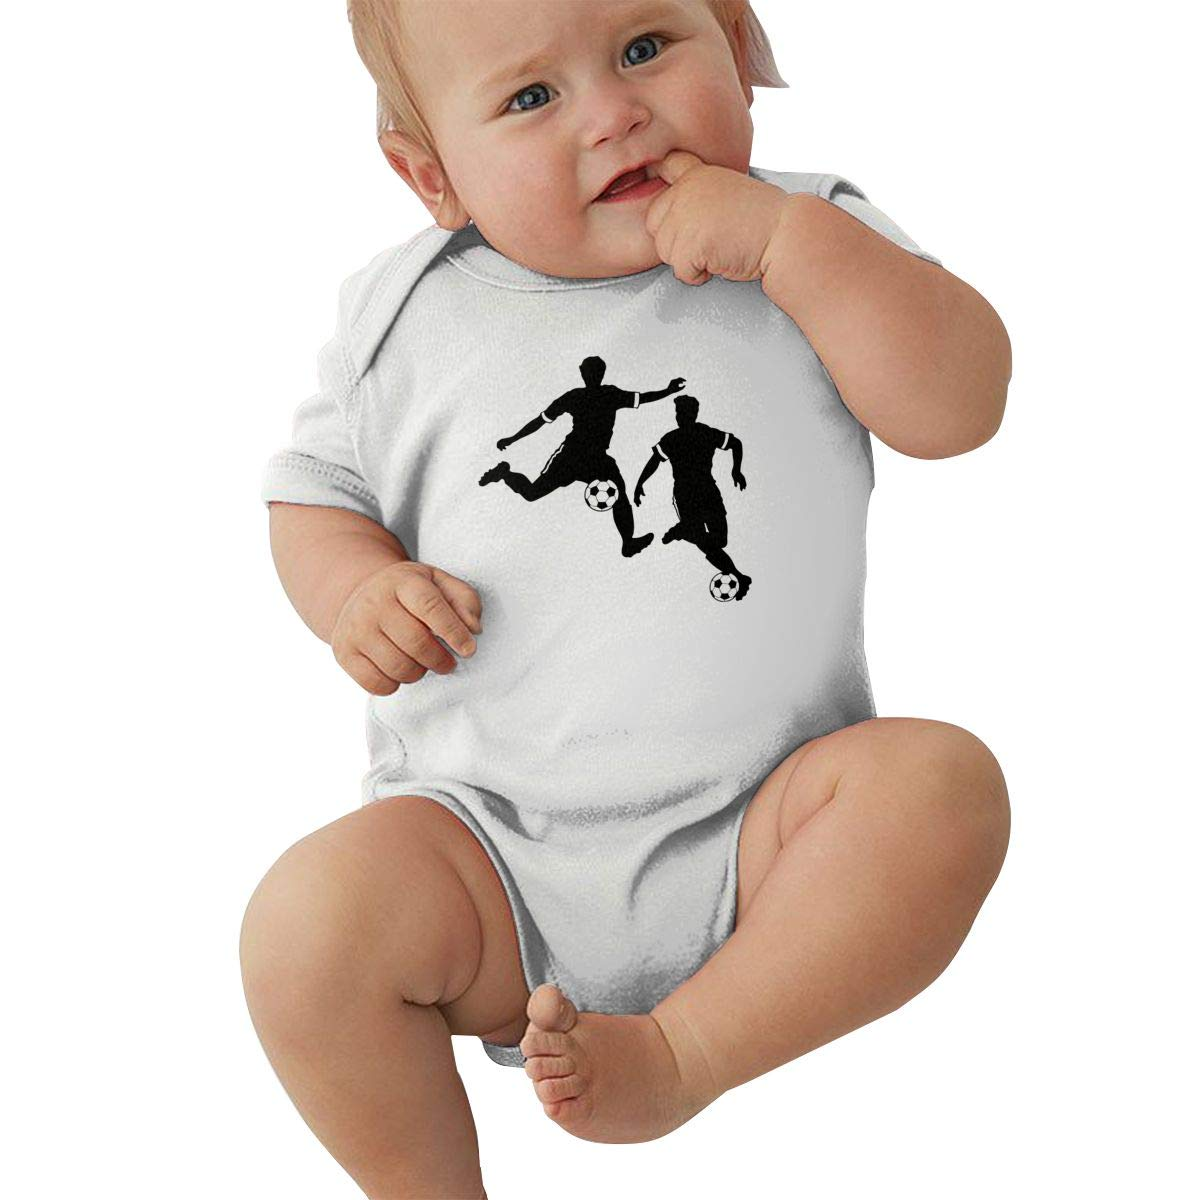 Toddler Baby Girl Boy Boy Soccer Silhouettes Outfits Romper Jumpsuit Short Sleeve Bodysuit Tops Clothes